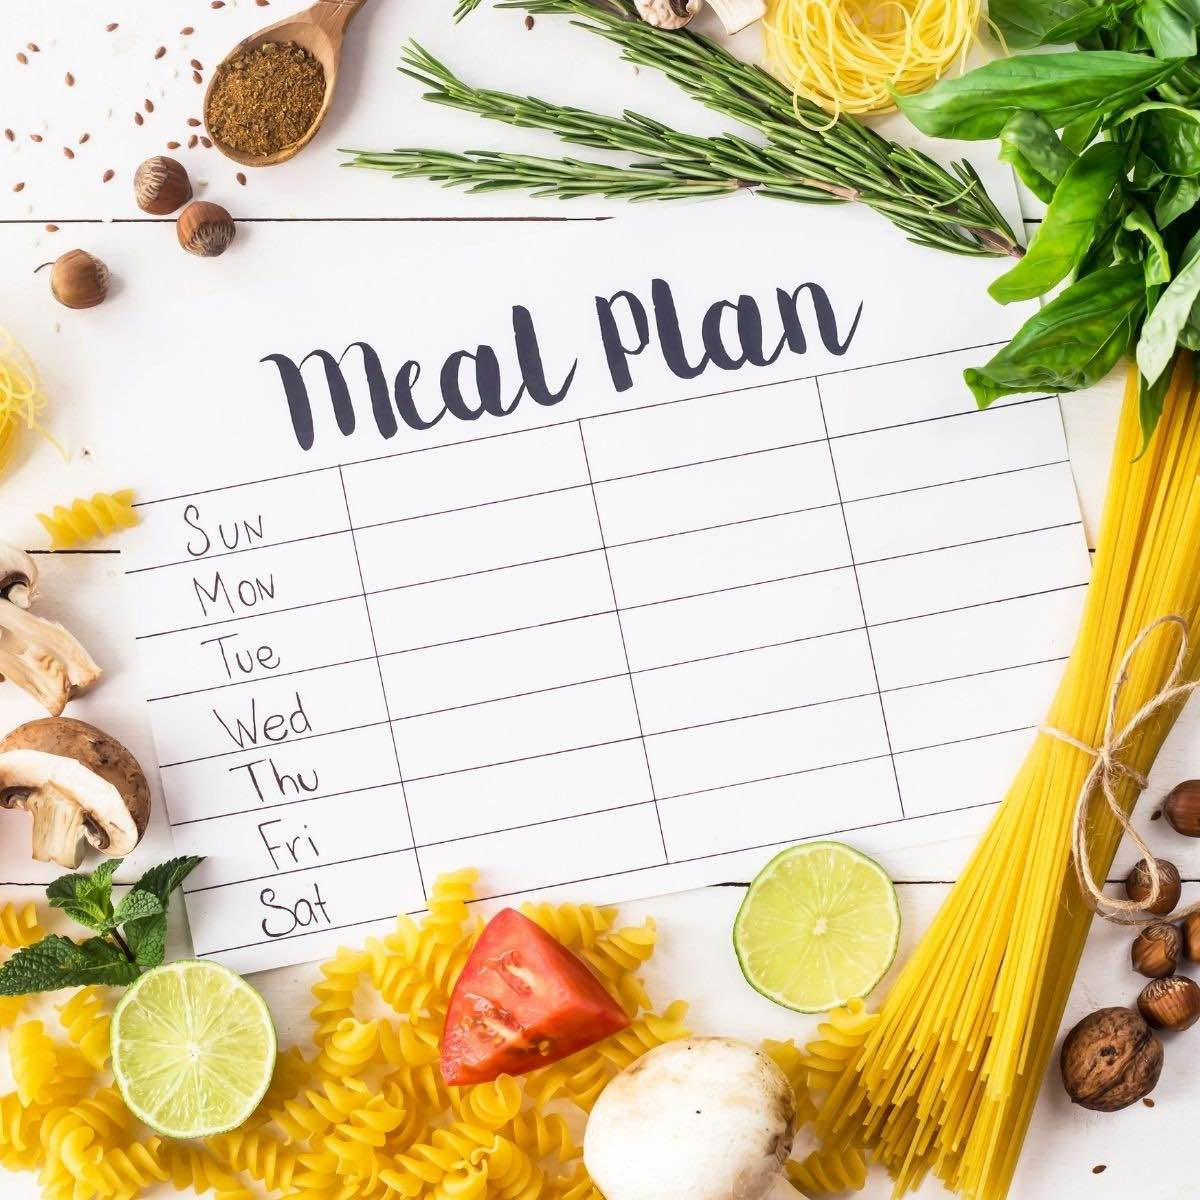 How to meal plan image with blank meal planner surrounded by food.